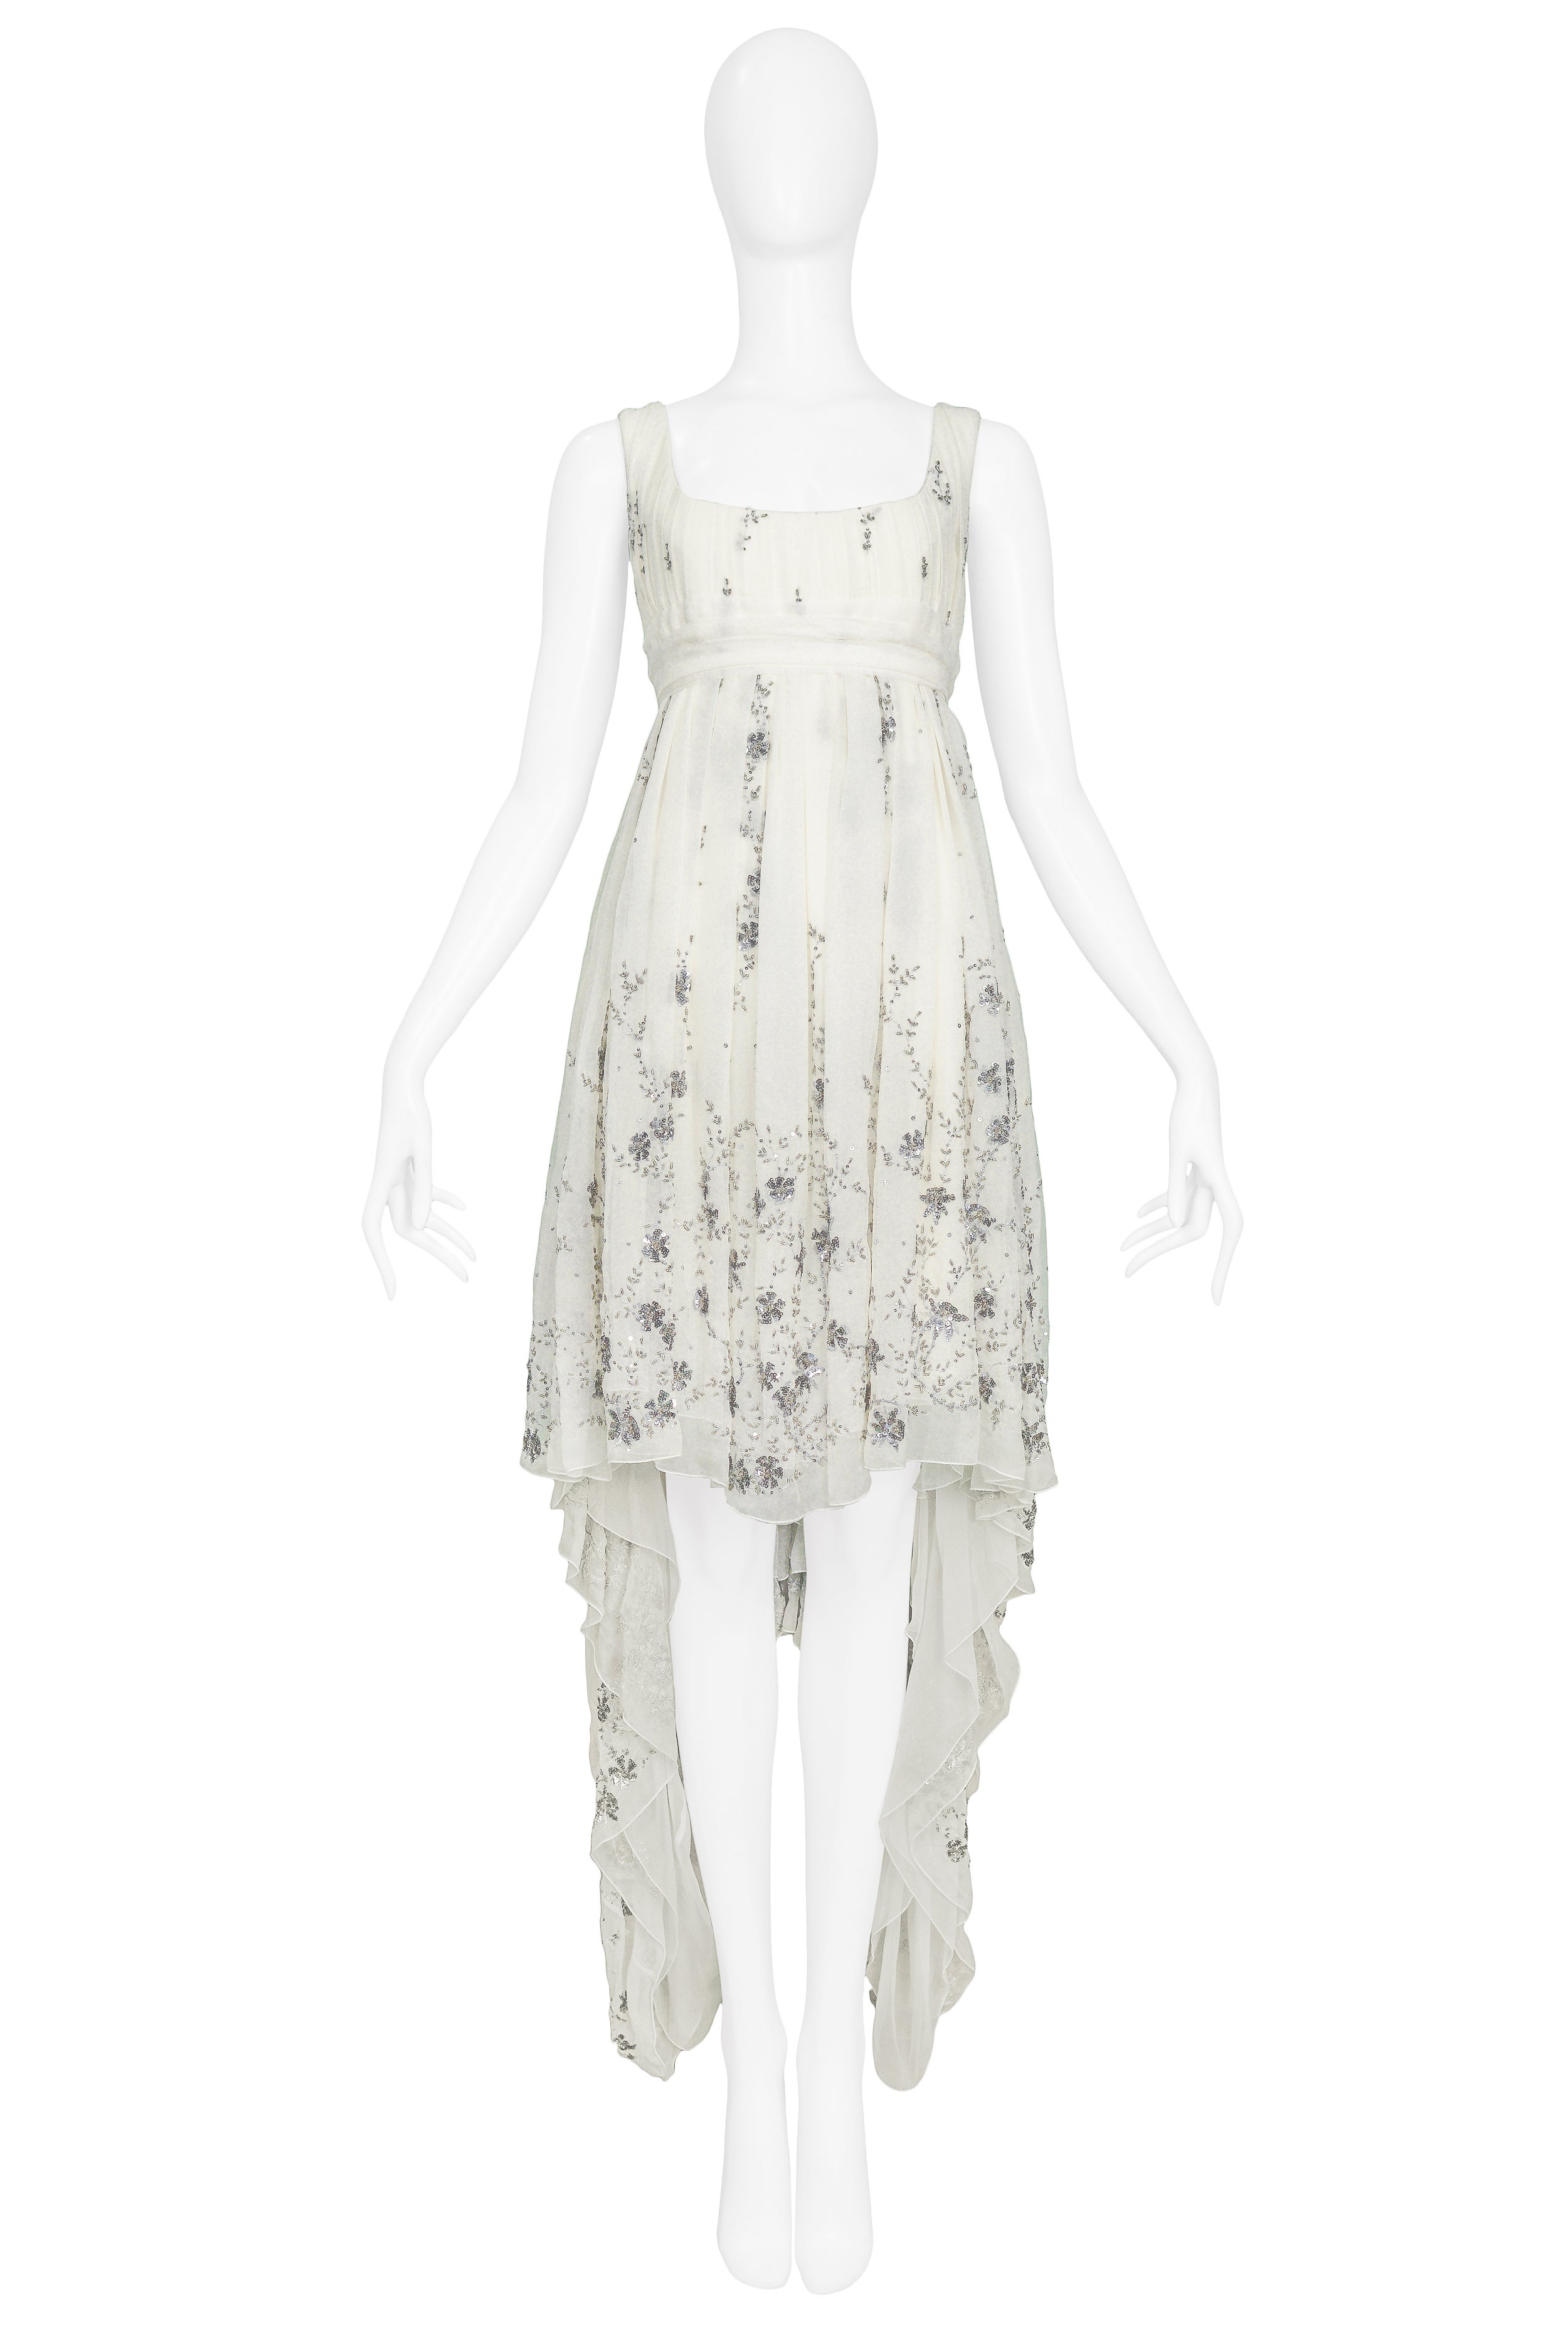 b3be29e2eaa Alexander McQueen Embroidered Runway Gown